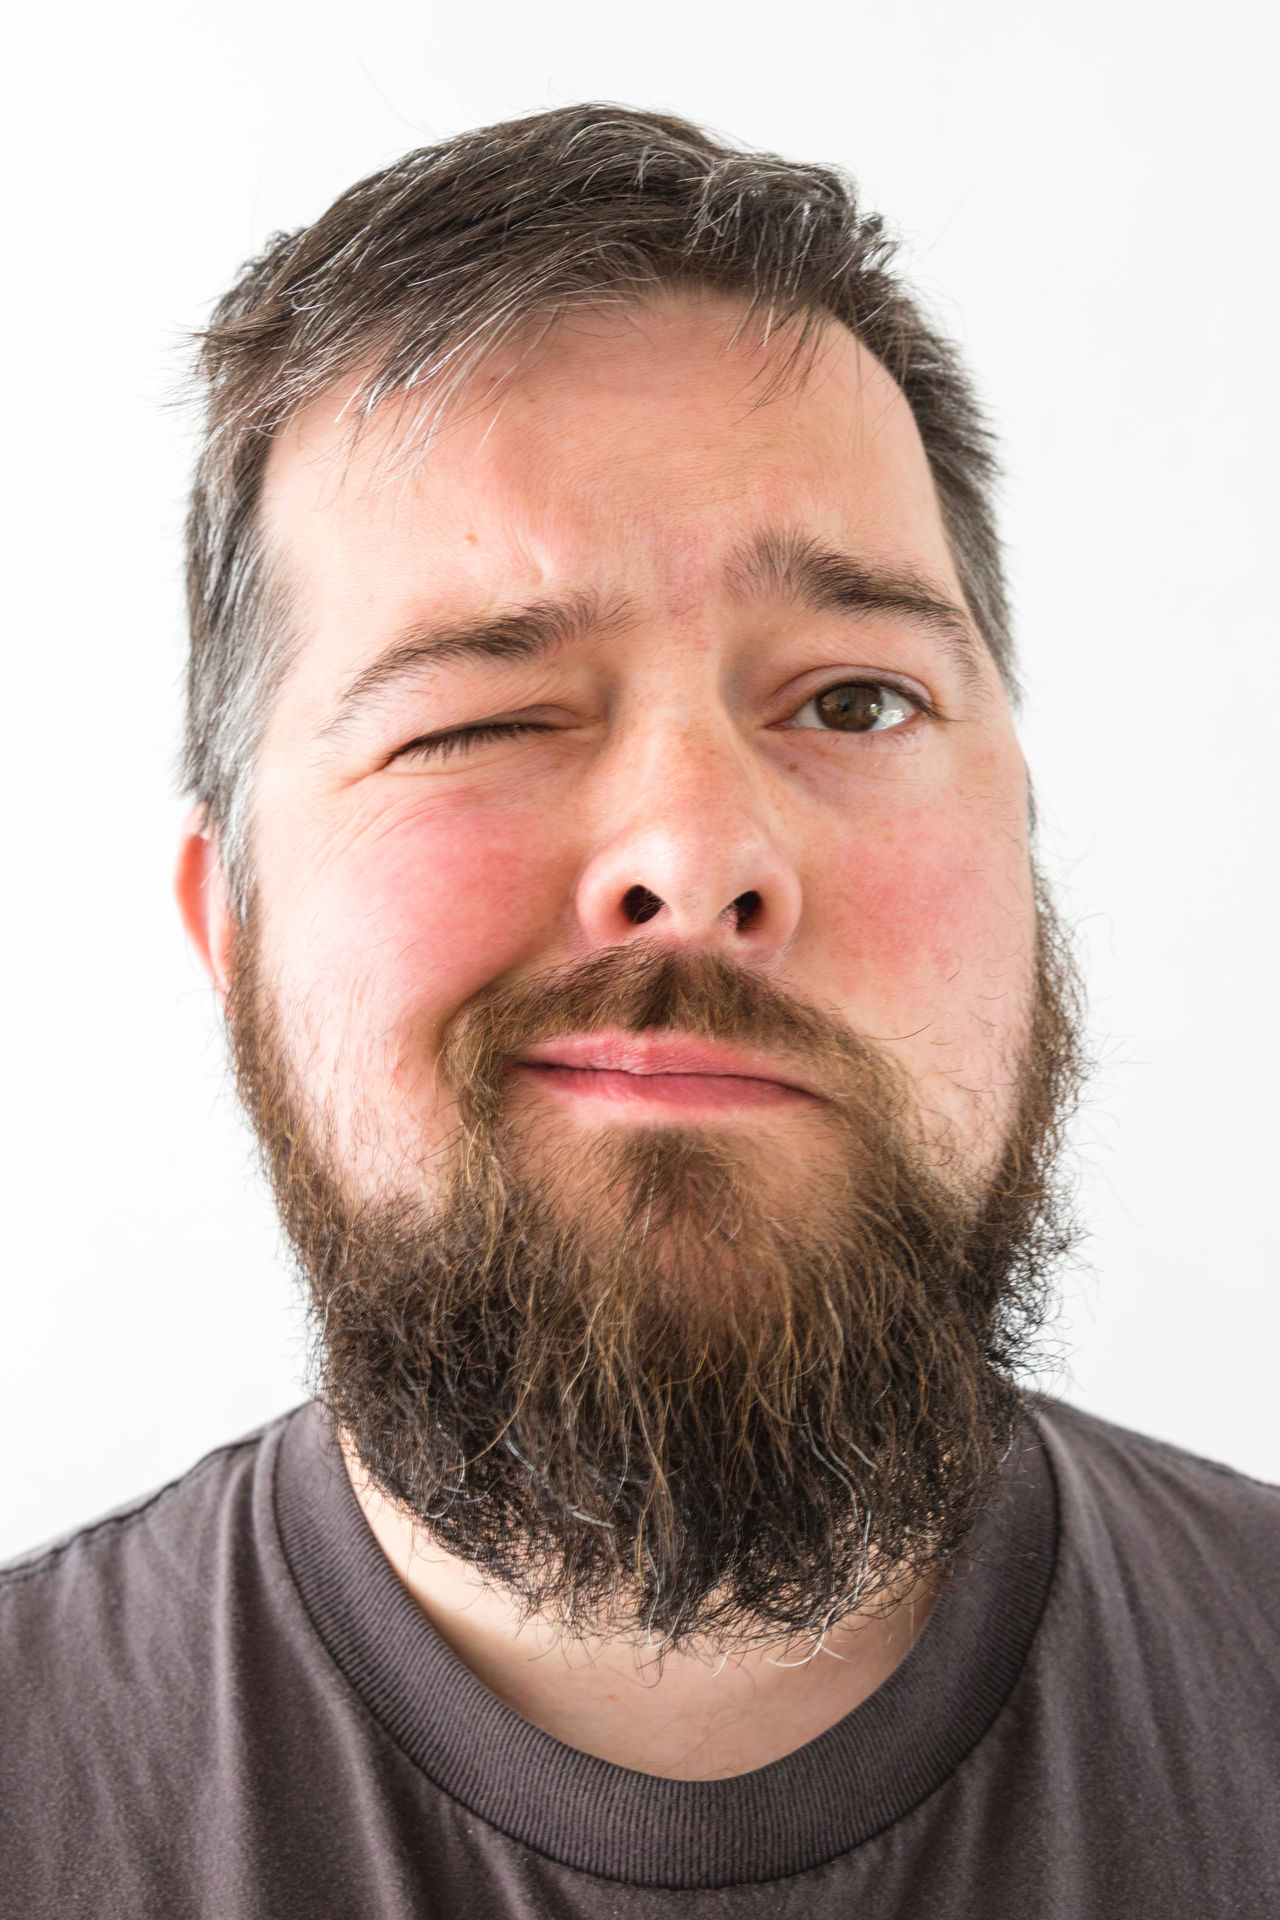 Adult Adults Only Beard Close-up Front View Headshot Human Body Part Human Face Indoors  Looking At Camera Males  Men One Man Only One Person Only Men People Portrait Smirk Studio Shot White Background Wink Young Adult